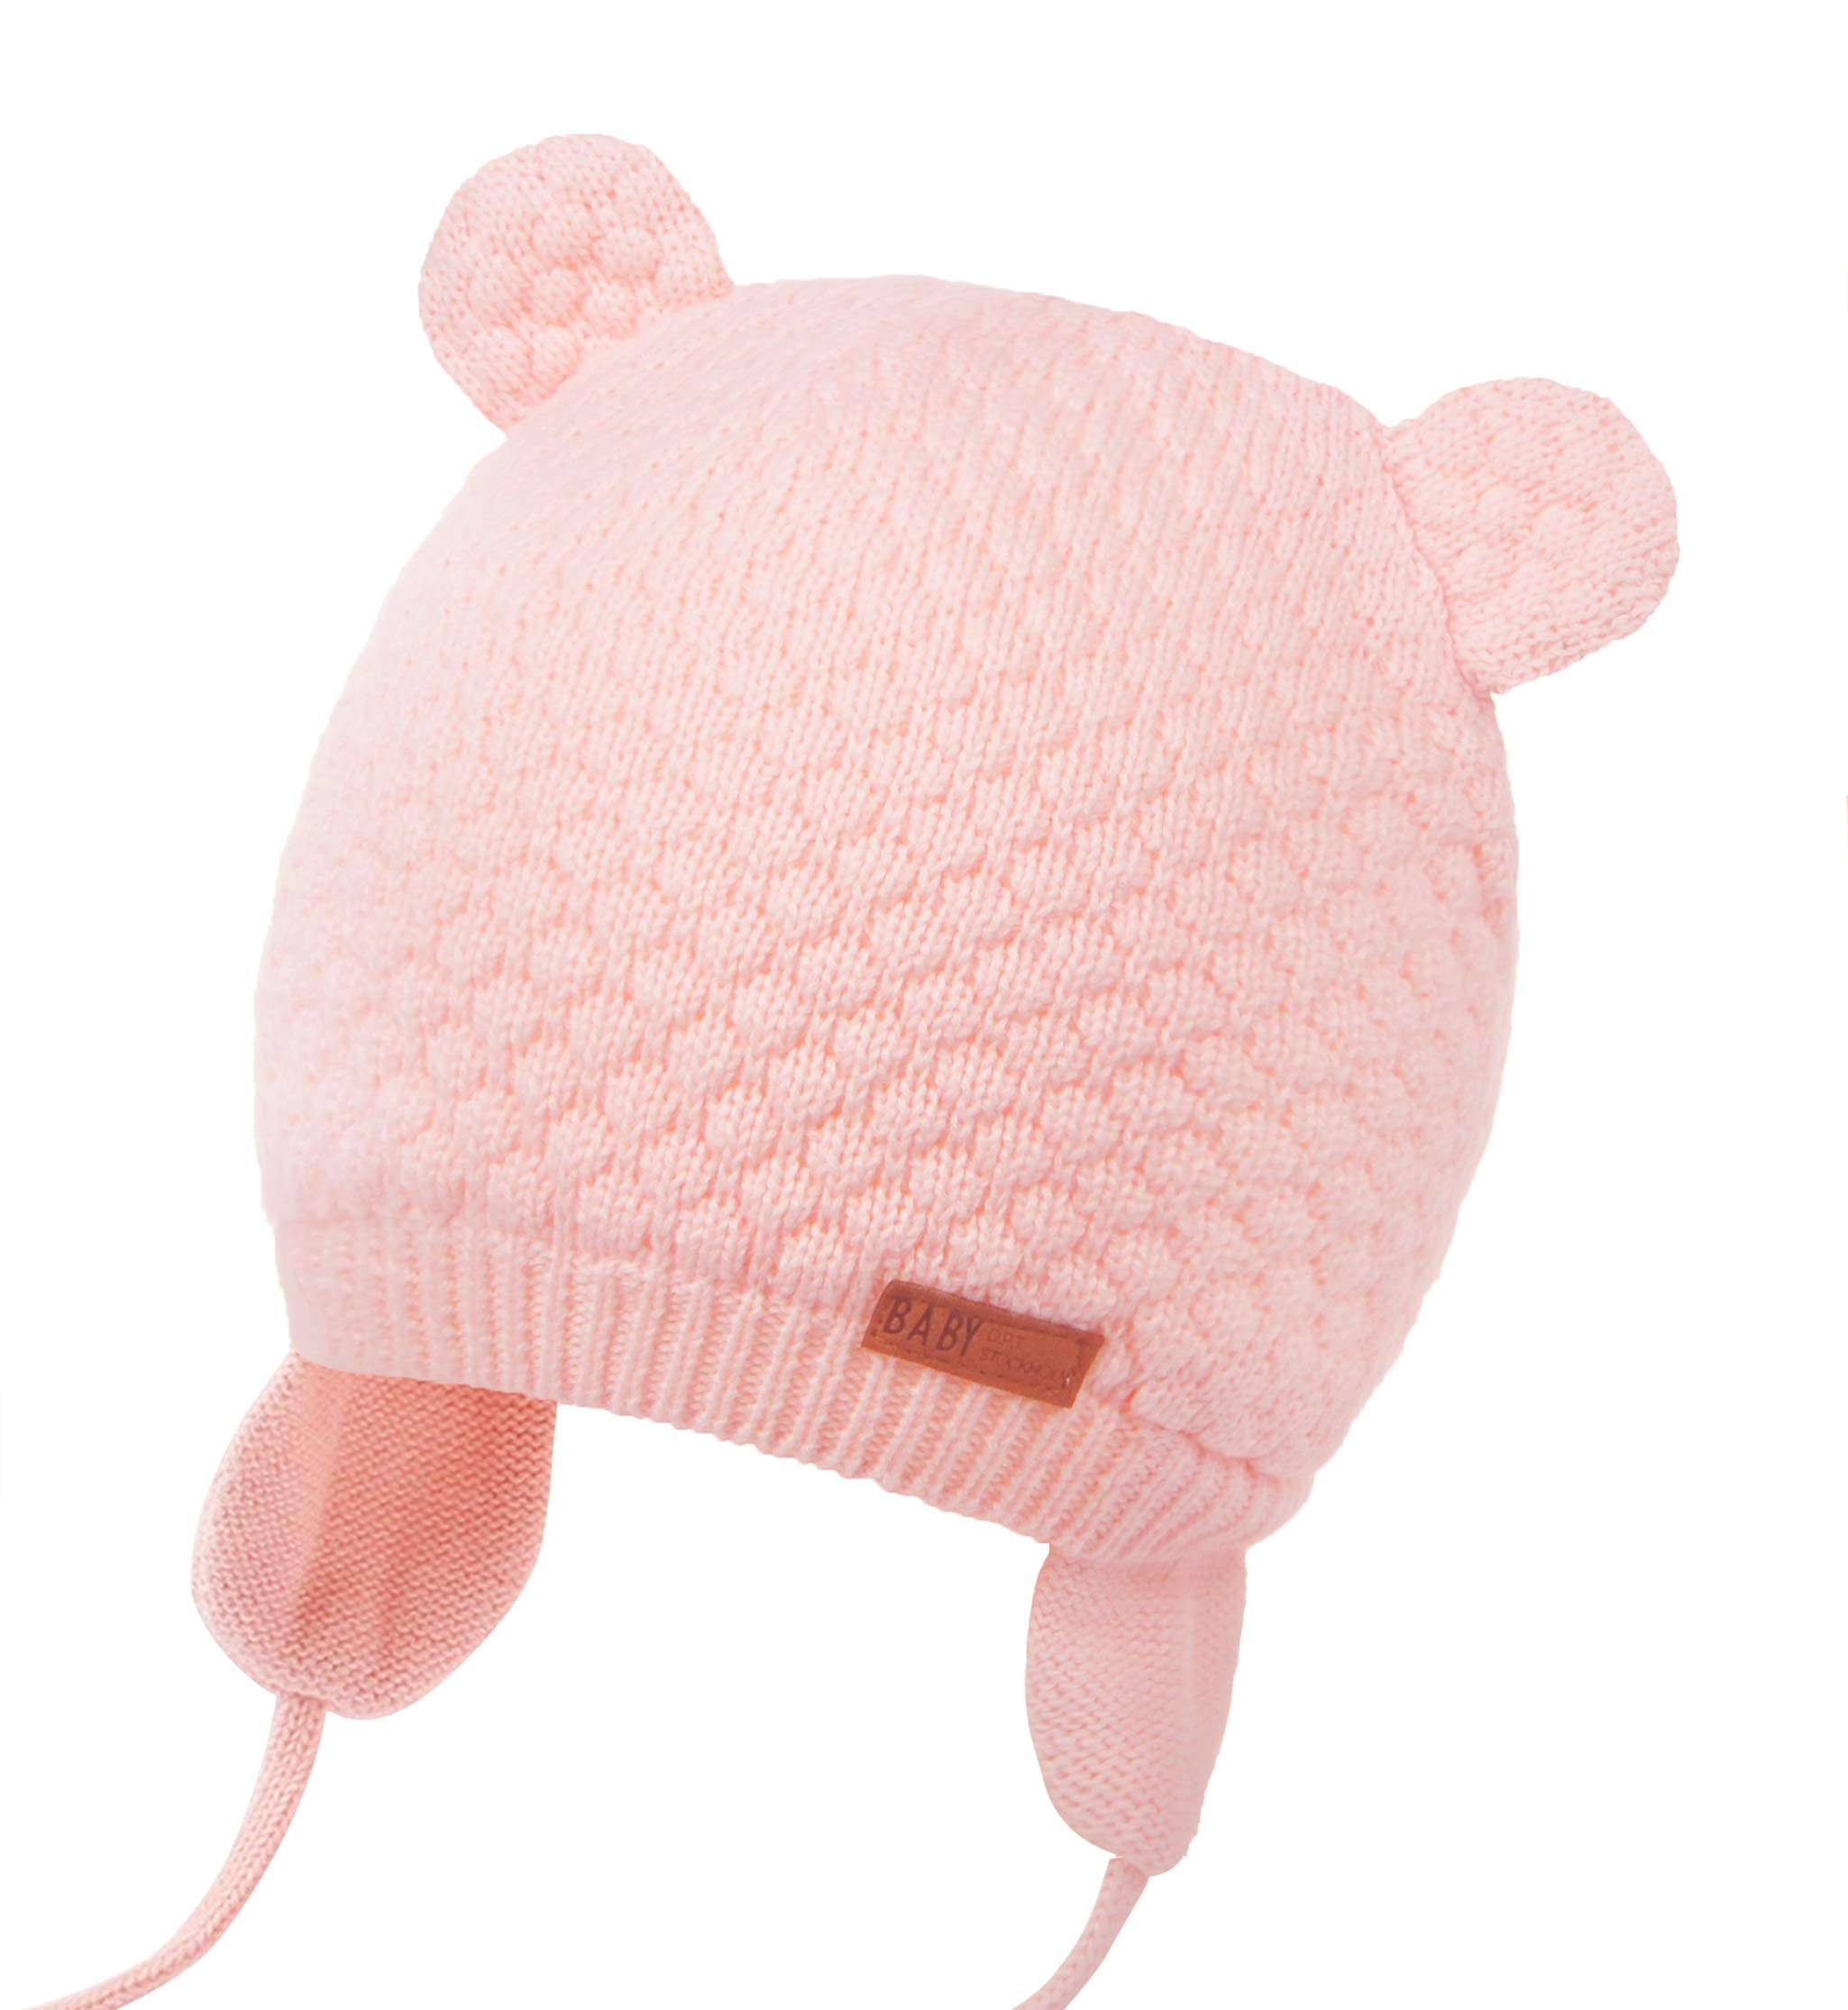 Joyingtwo Soft Warm Knit Wool Cute Bear Baby/Infant/Toddler Beanie Hat with Earflap for Winter/Autumn, Pink L